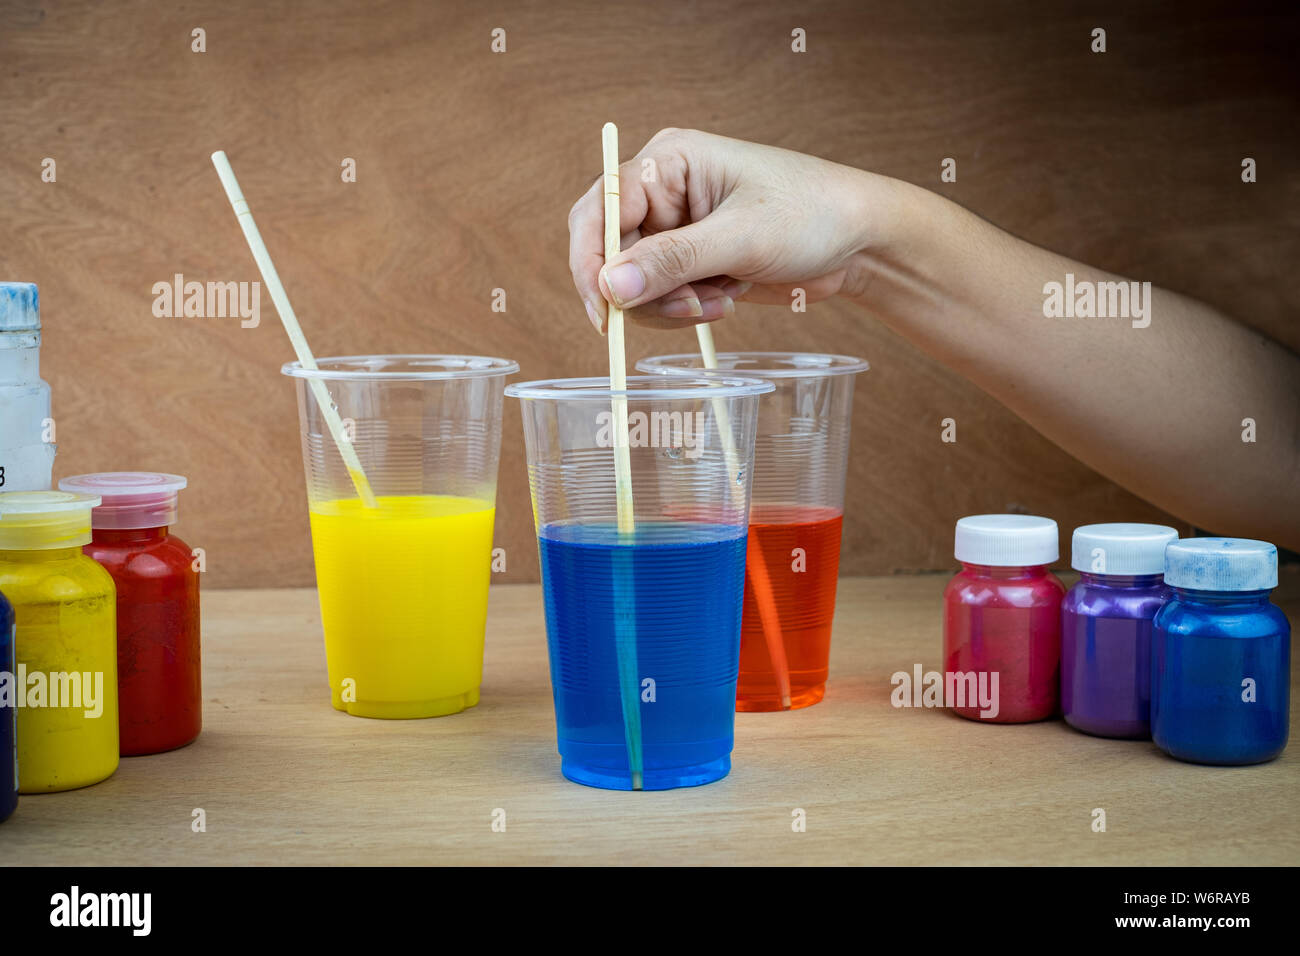 Mixing color epoxy resin in plastic cup for casting